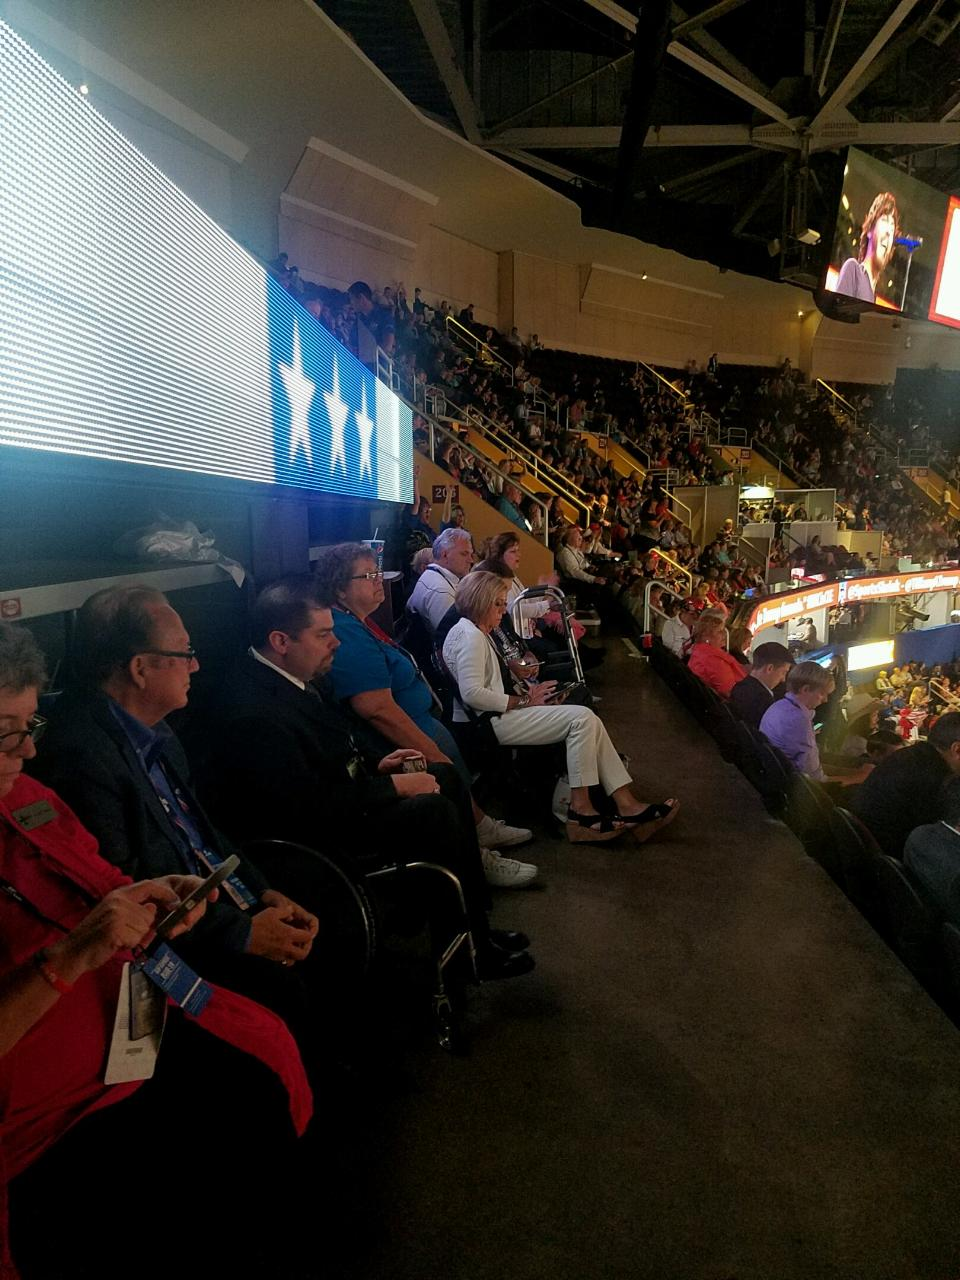 Image shows people in wheelchairs and with other disabilities seated at an ADA section at the RNC